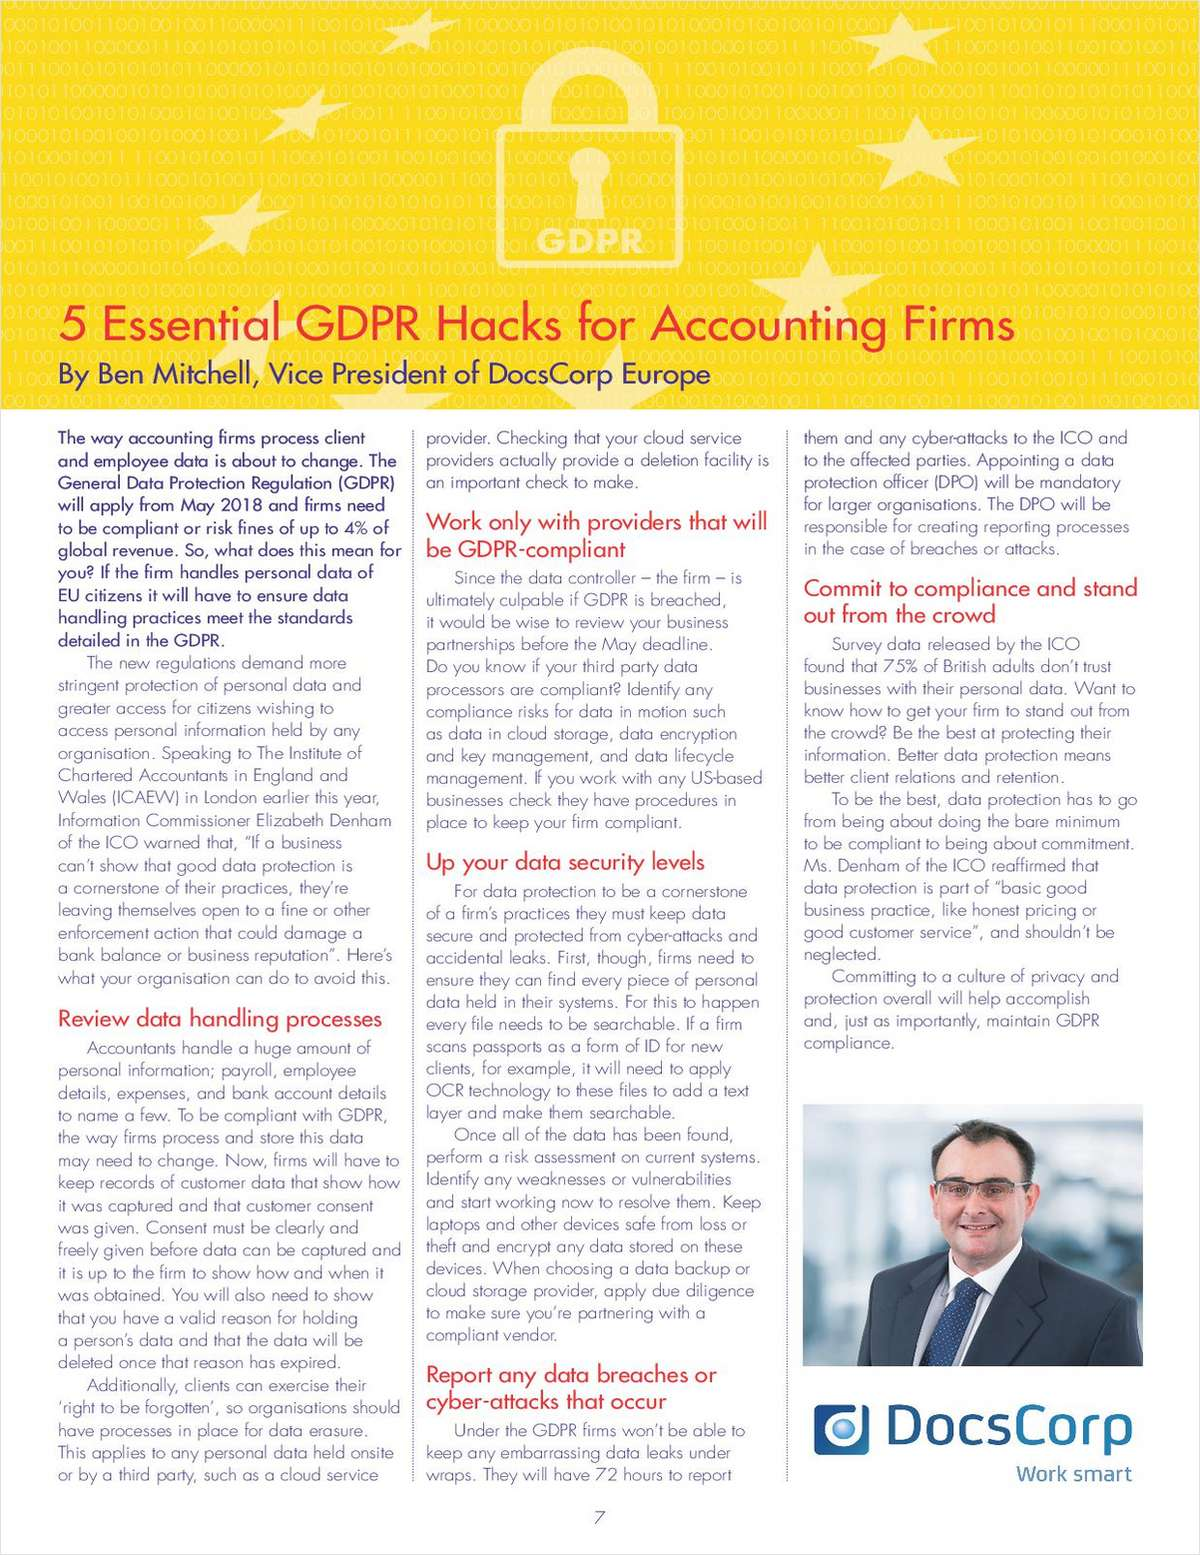 5 Essential GDPR Hacks for Accounting Firms